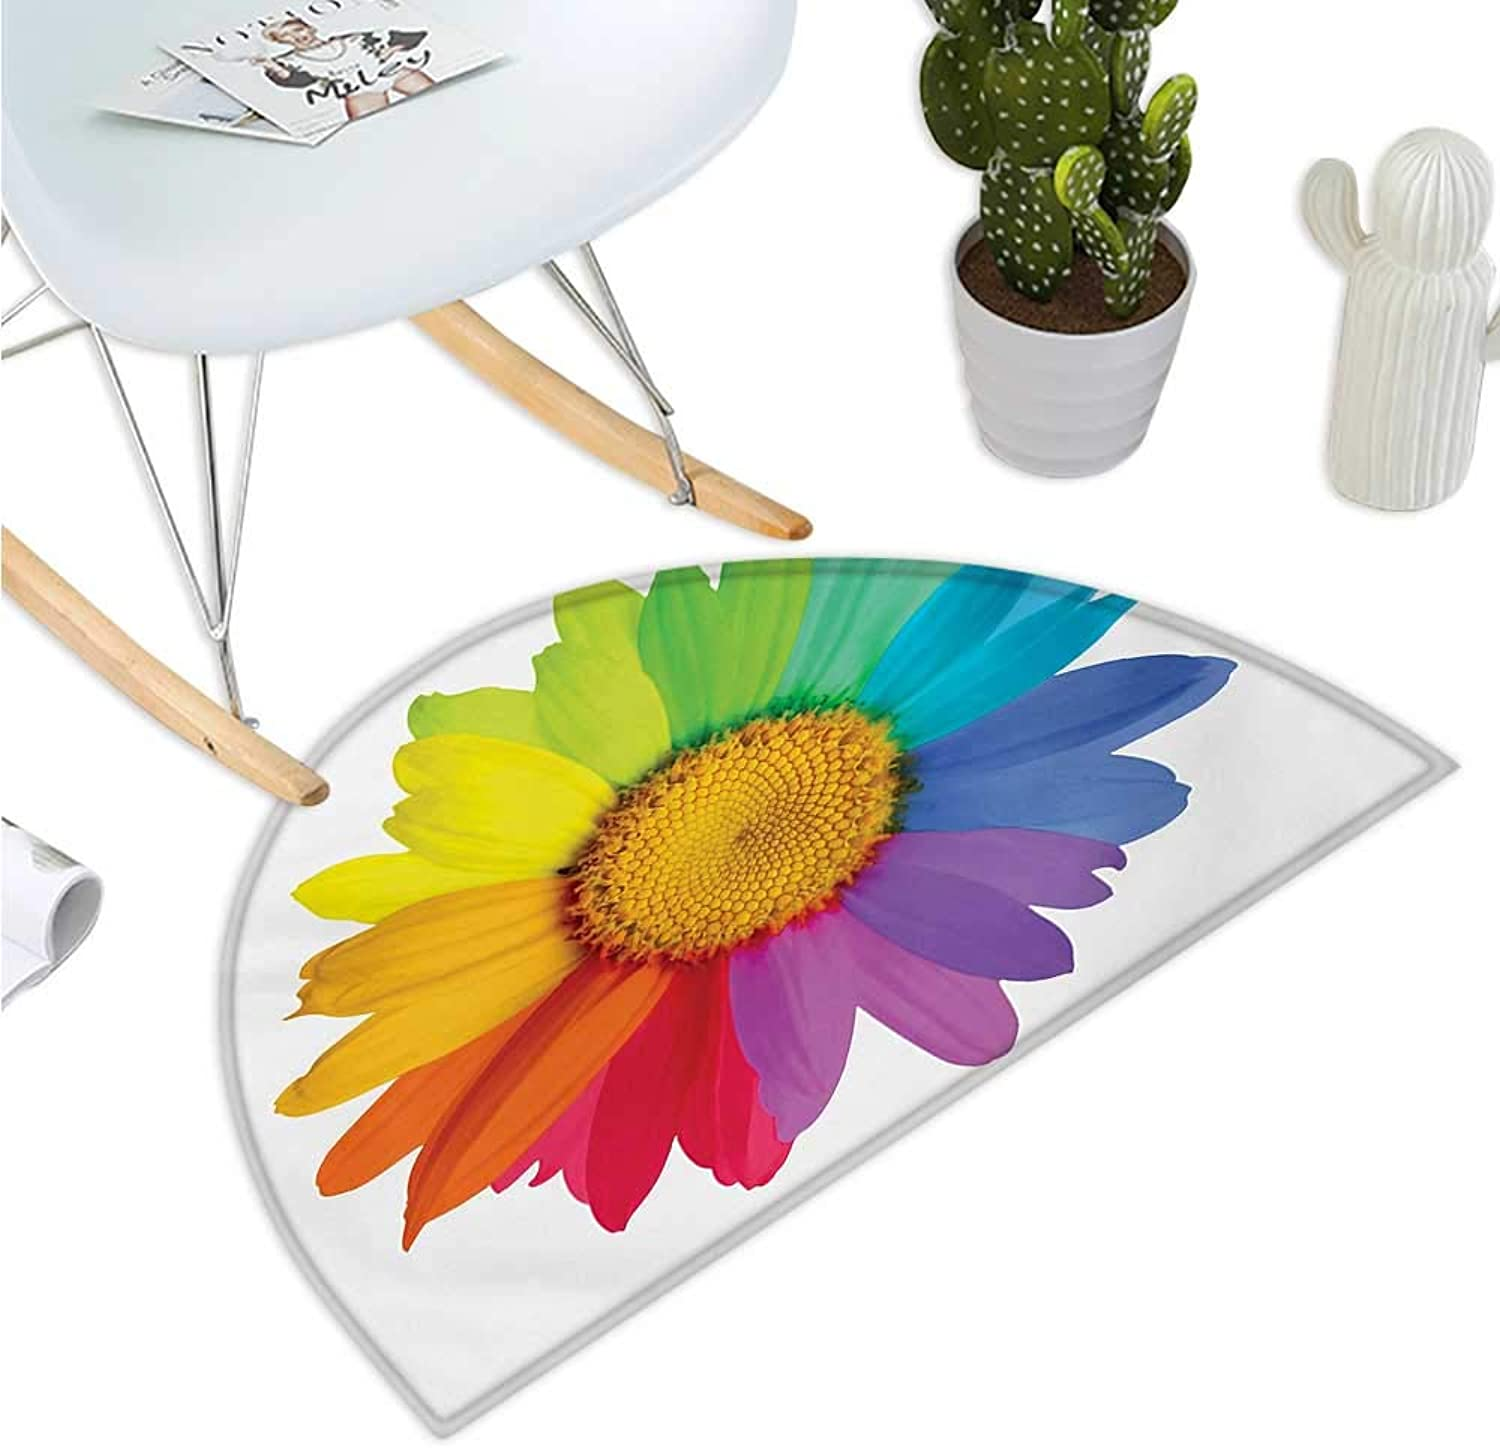 Flower Semicircular Cushion Rainbow colord Sunflower or Daisy Spring Inspired Image Hippie Style Modern Design Entry Door Mat H 43.3  xD 64.9  Multicolor